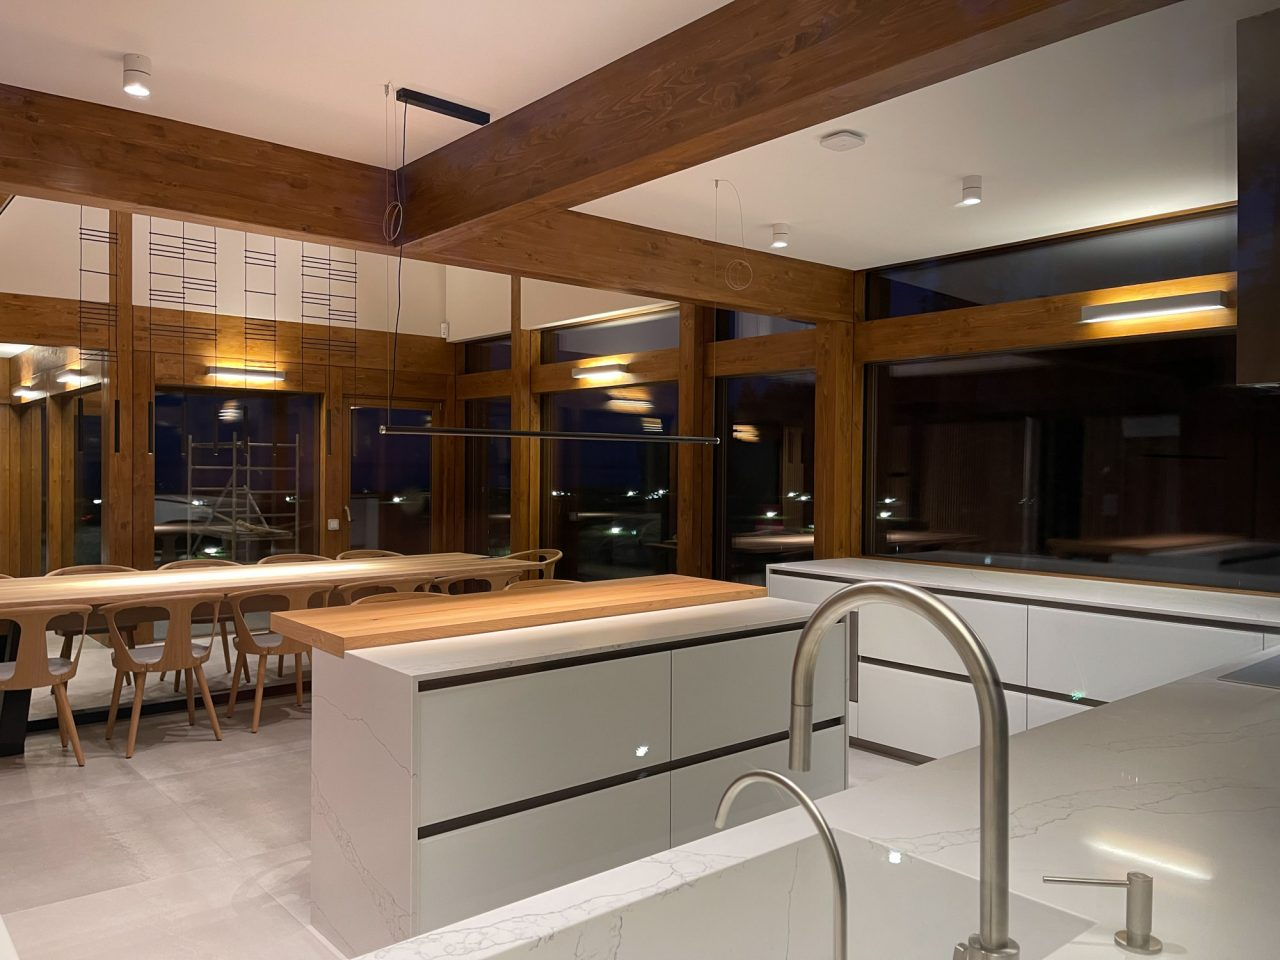 Hlass_house_KAGER - Hurii_34